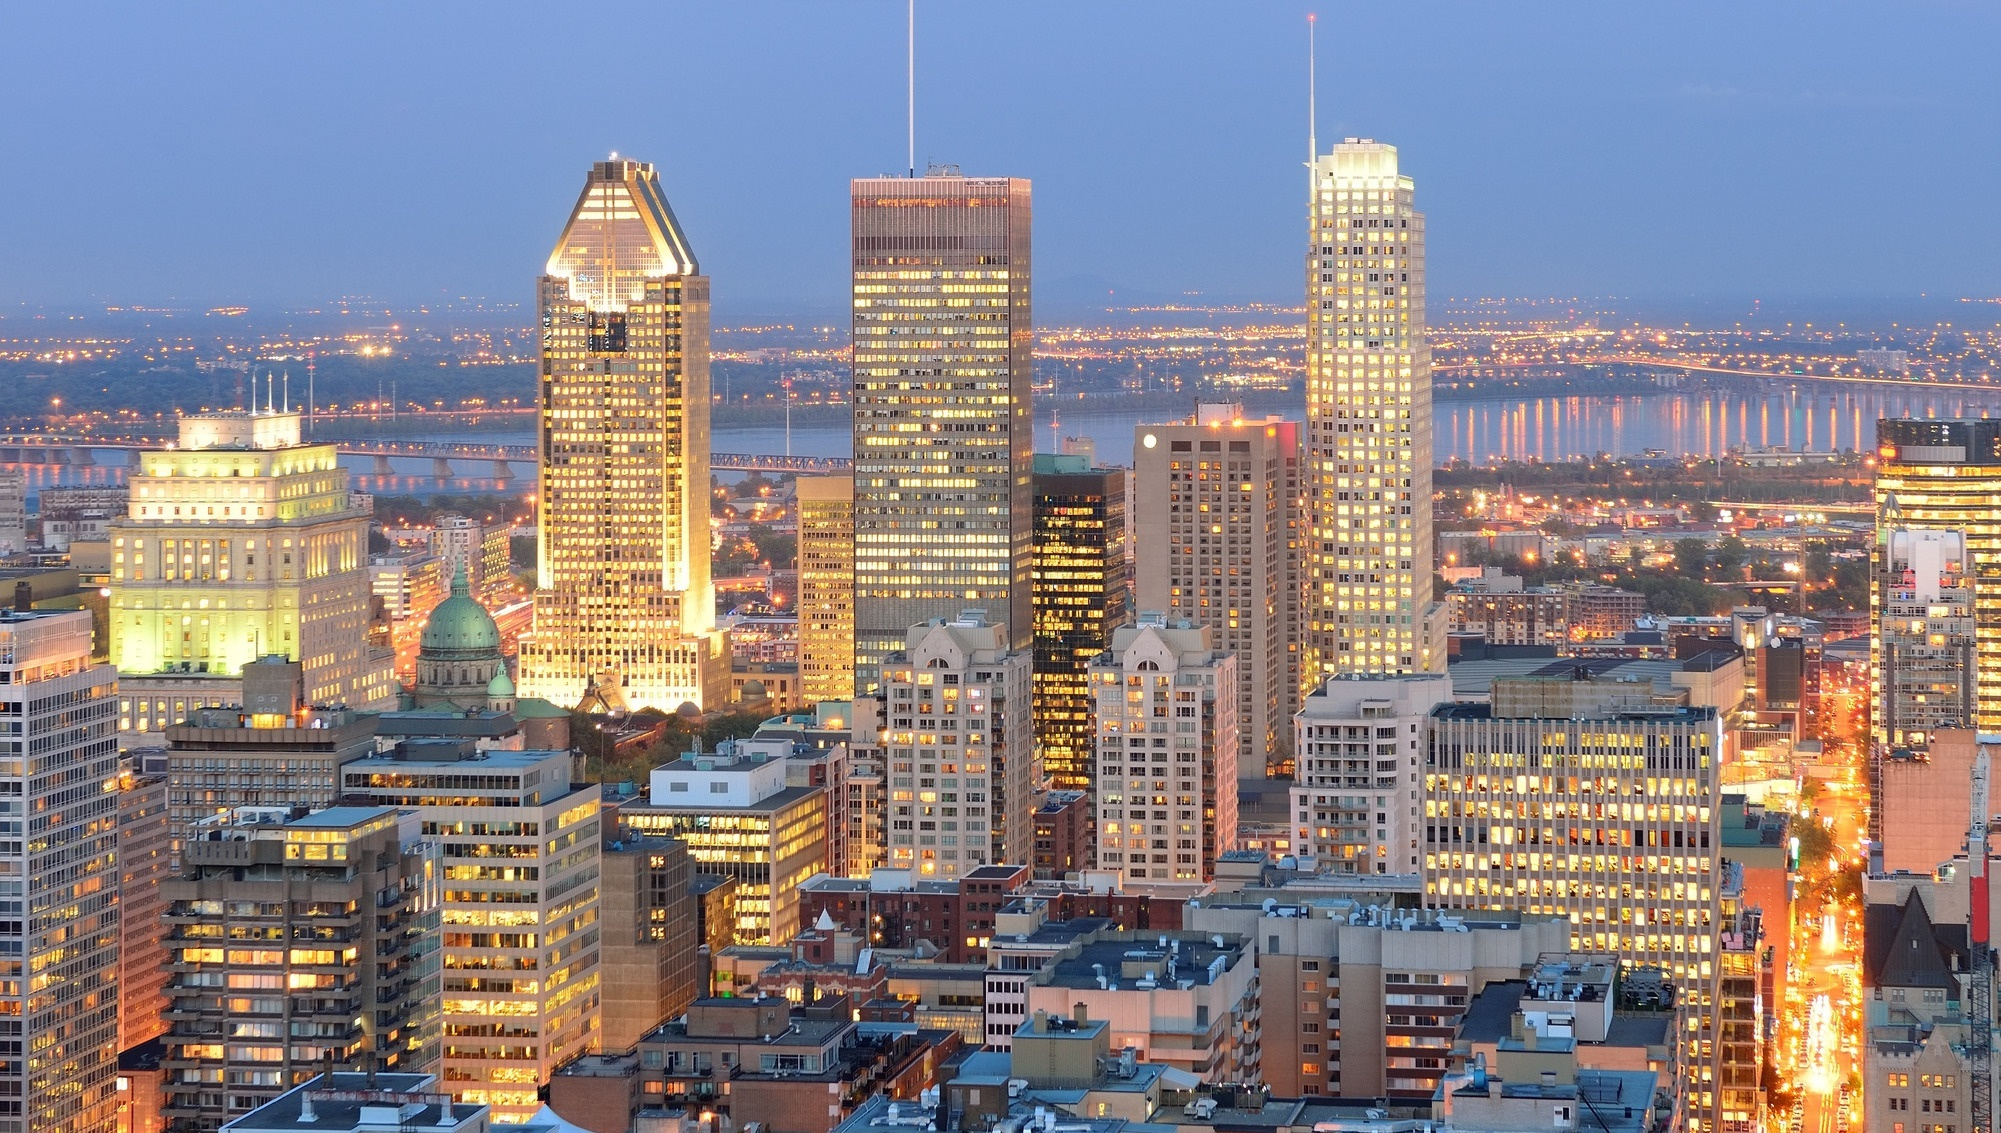 photodune-6165880-montreal-at-dusk-l.jpg